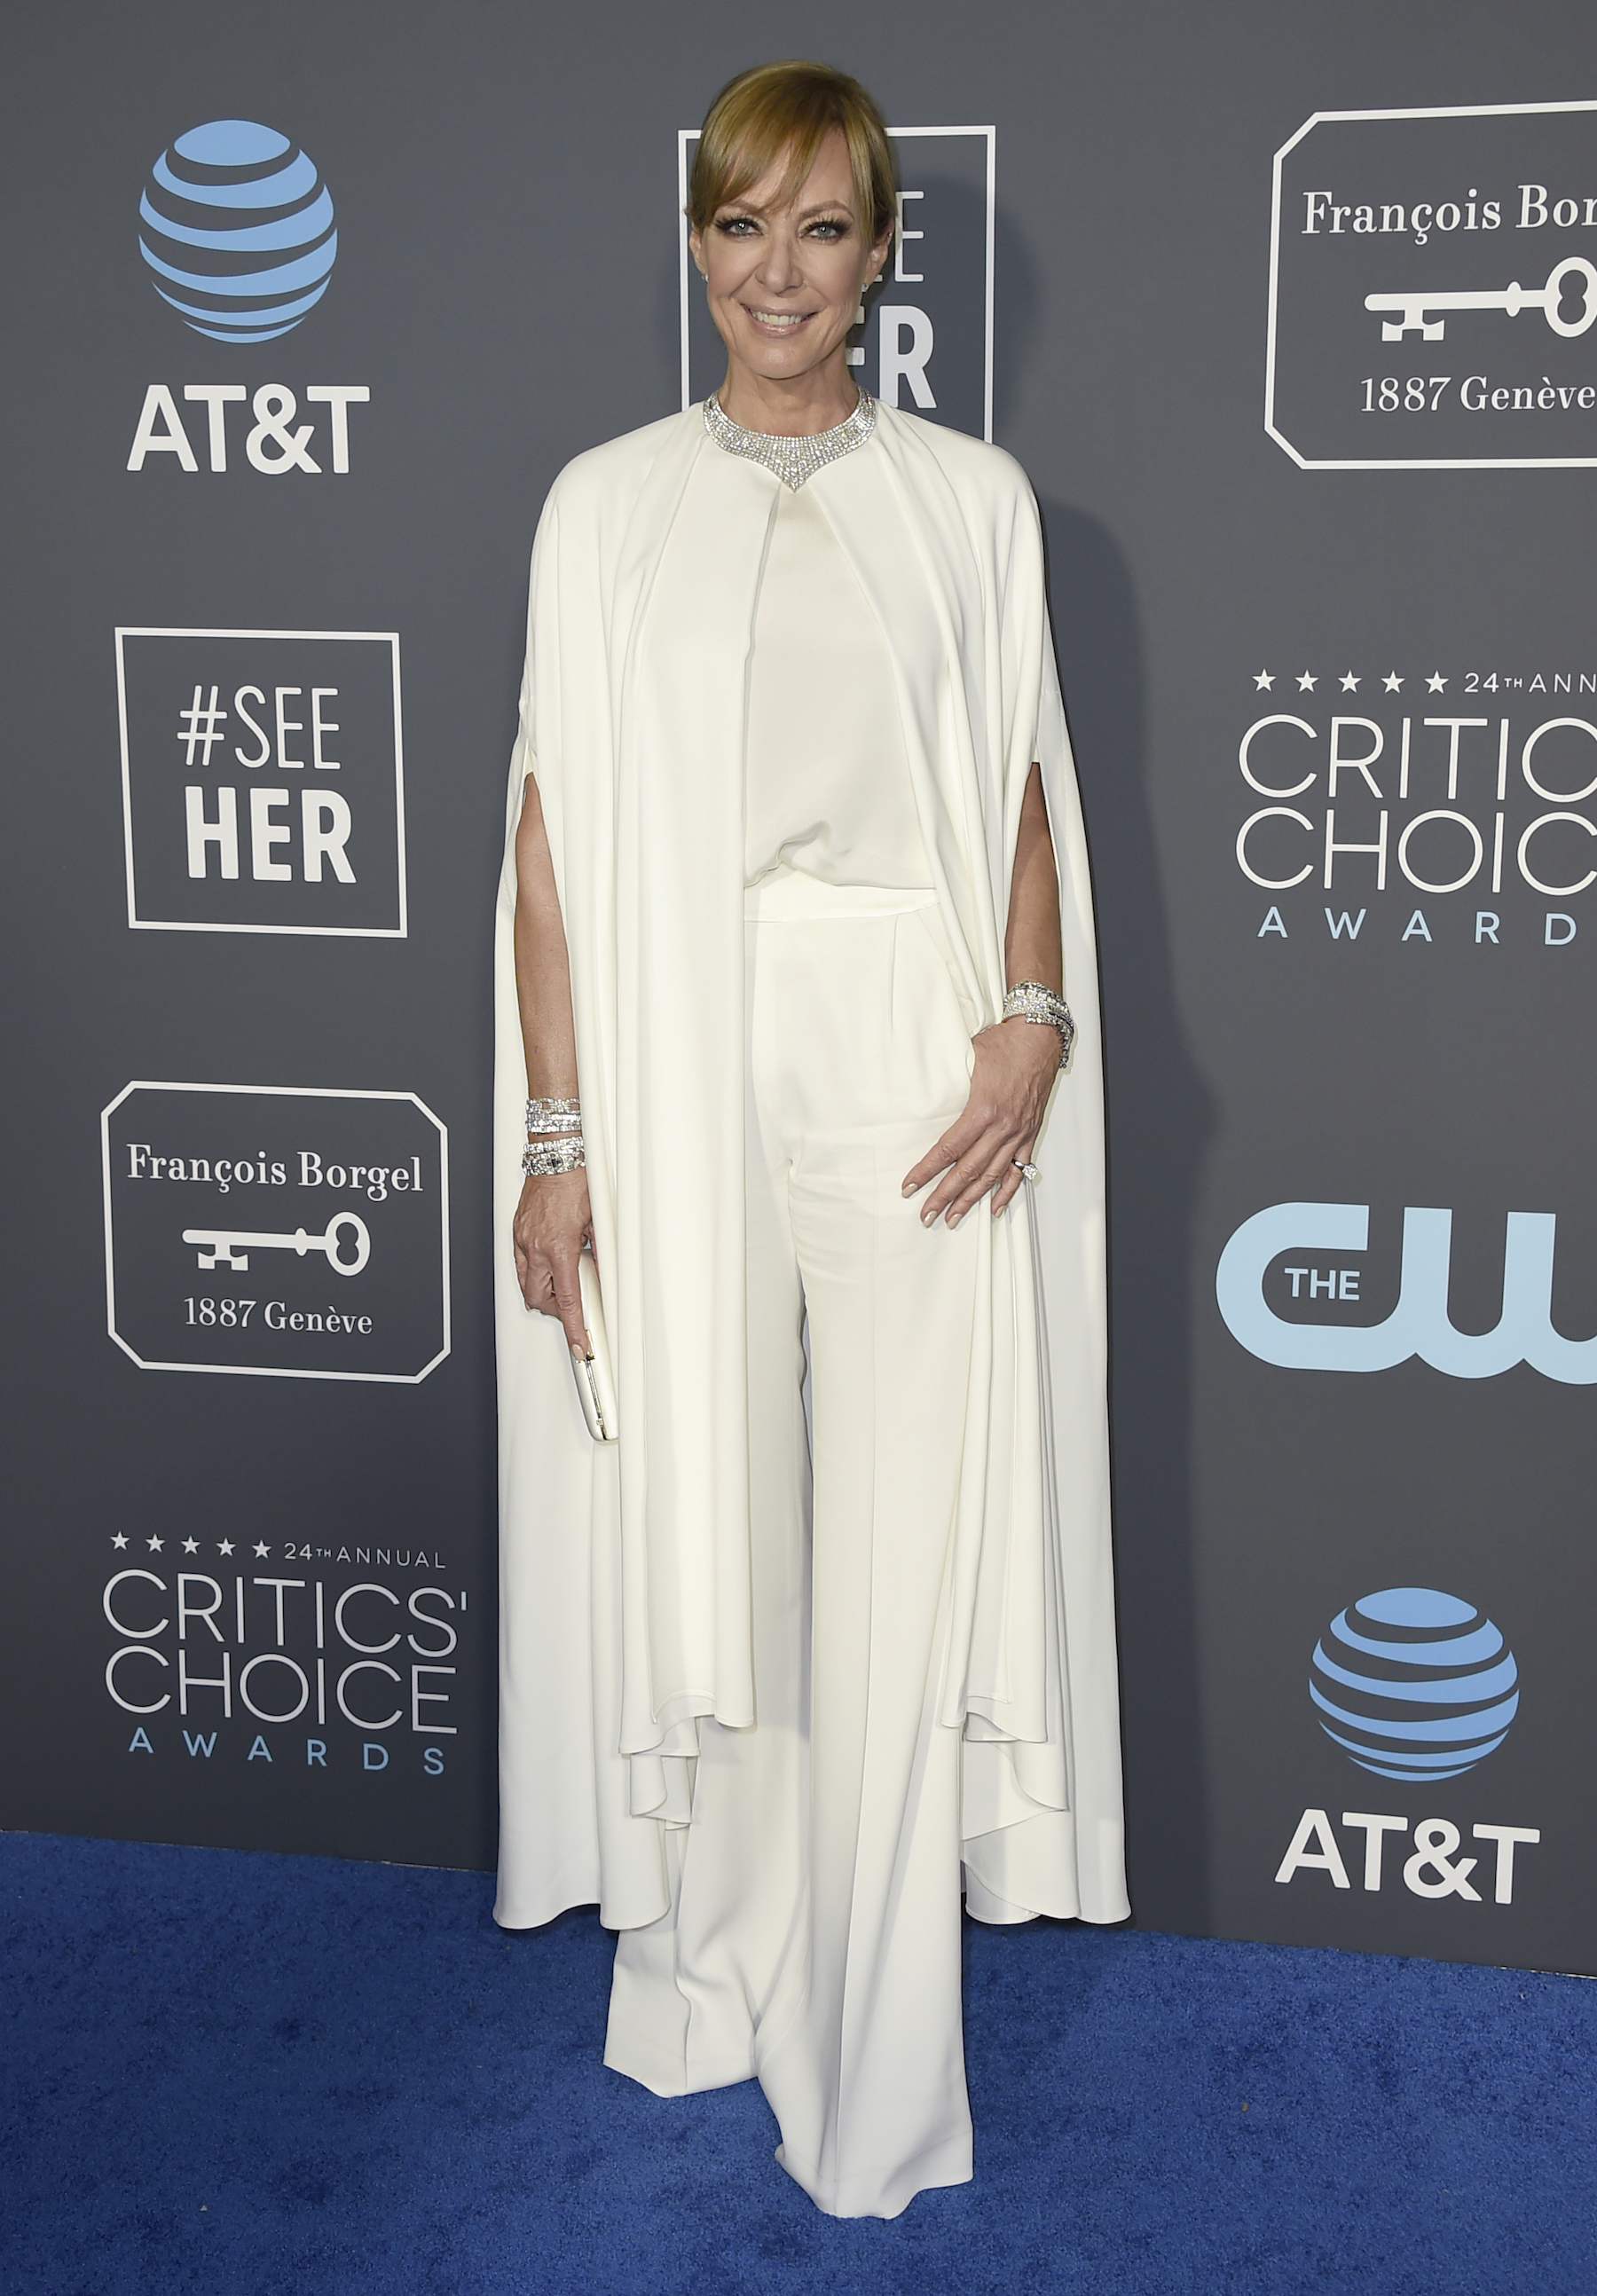 "<div class=""meta image-caption""><div class=""origin-logo origin-image ap""><span>AP</span></div><span class=""caption-text"">Allison Janney arrives at the 24th annual Critics' Choice Awards on Sunday, Jan. 13, 2019, at the Barker Hangar in Santa Monica, Calif. (Jordan Strauss/Invision/AP)</span></div>"